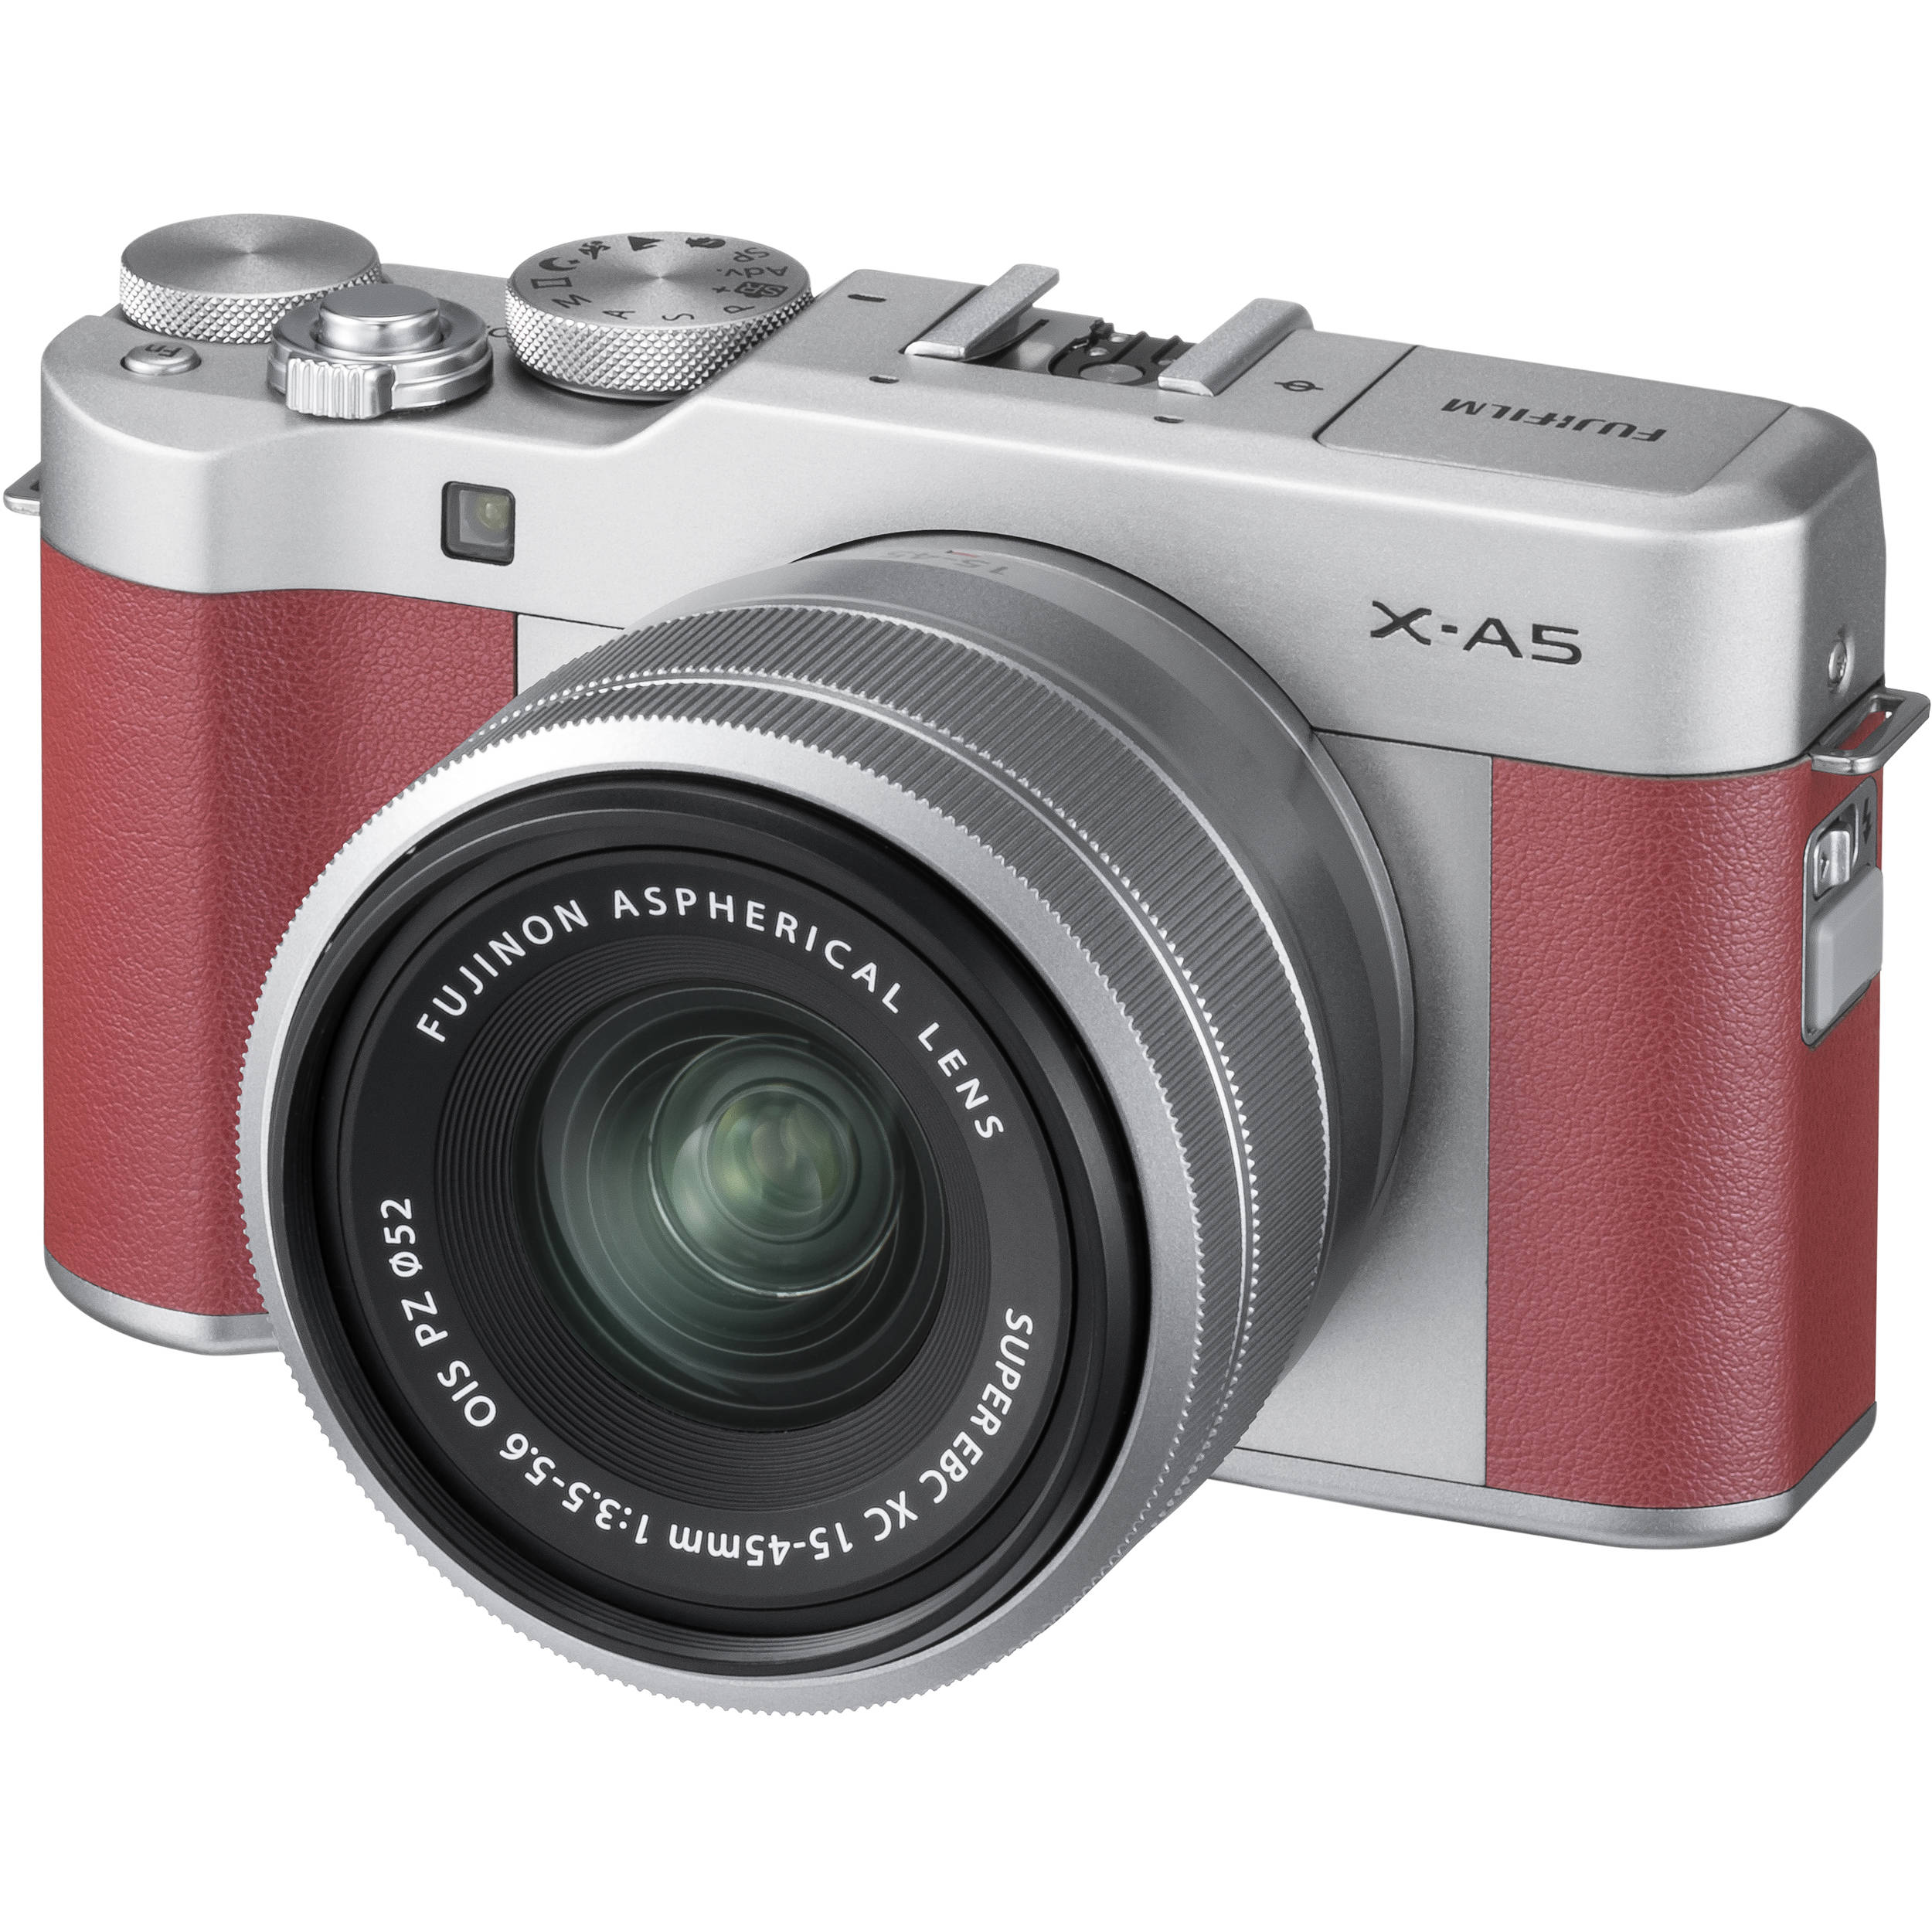 FUJIFILM X-A5 Mirrorless Digital Camera with 15-45mm Lens (Pink)